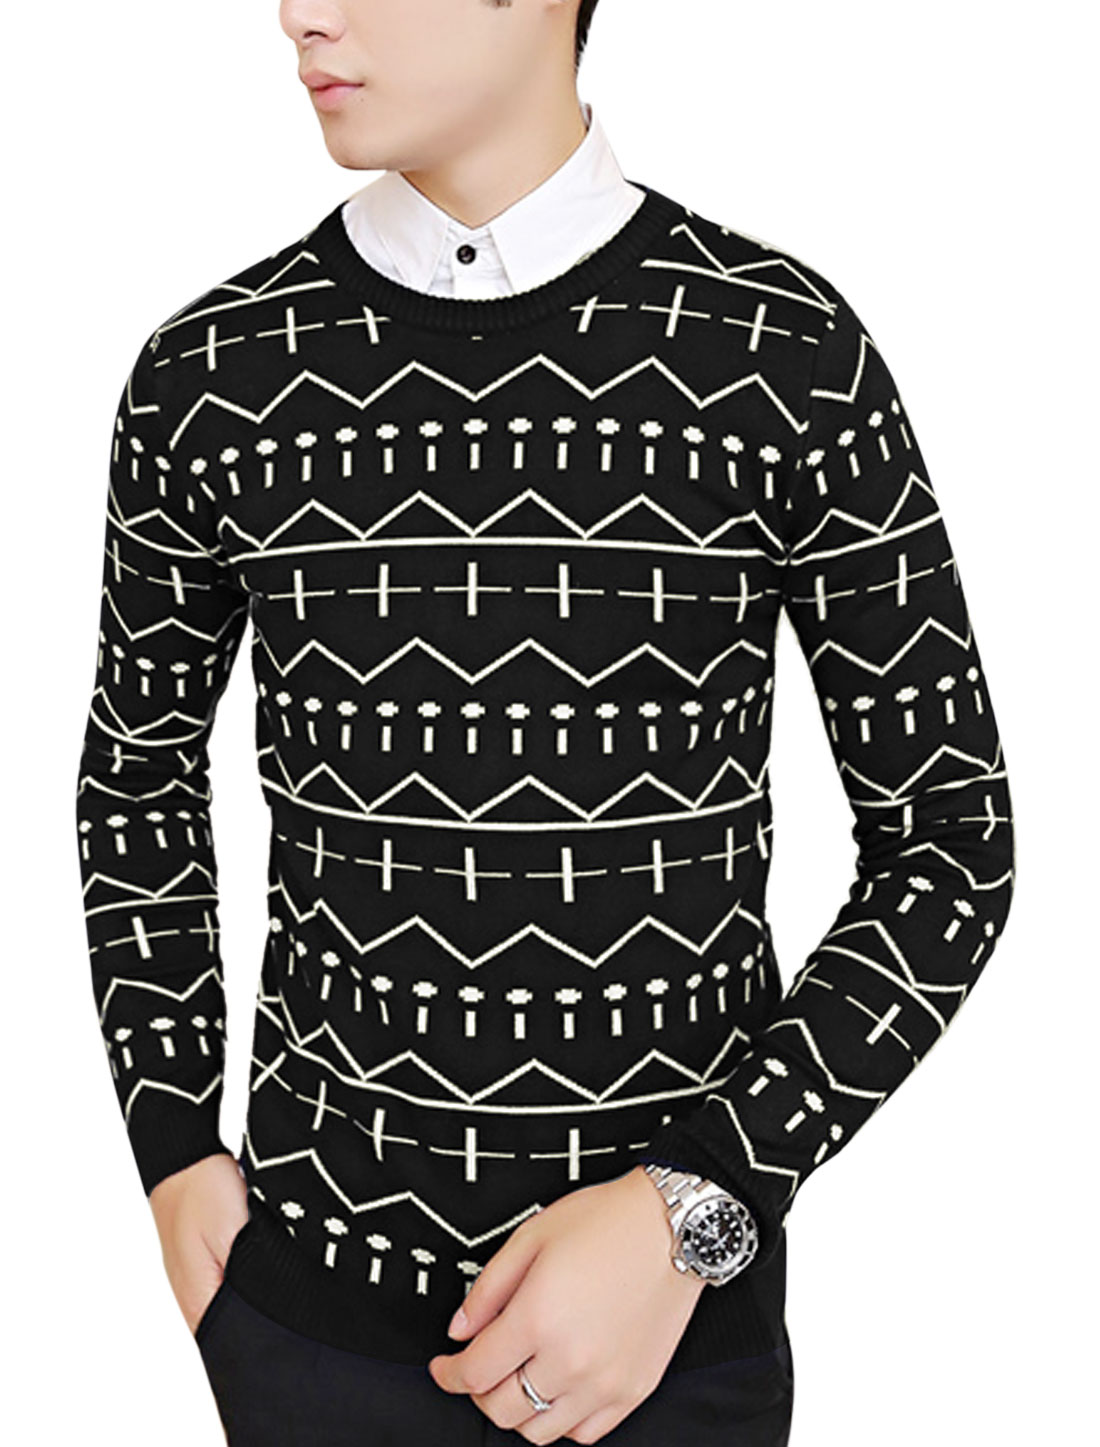 Men Pullover Zig-Zag Pattern Cozy Fit Knit Shirt Black M